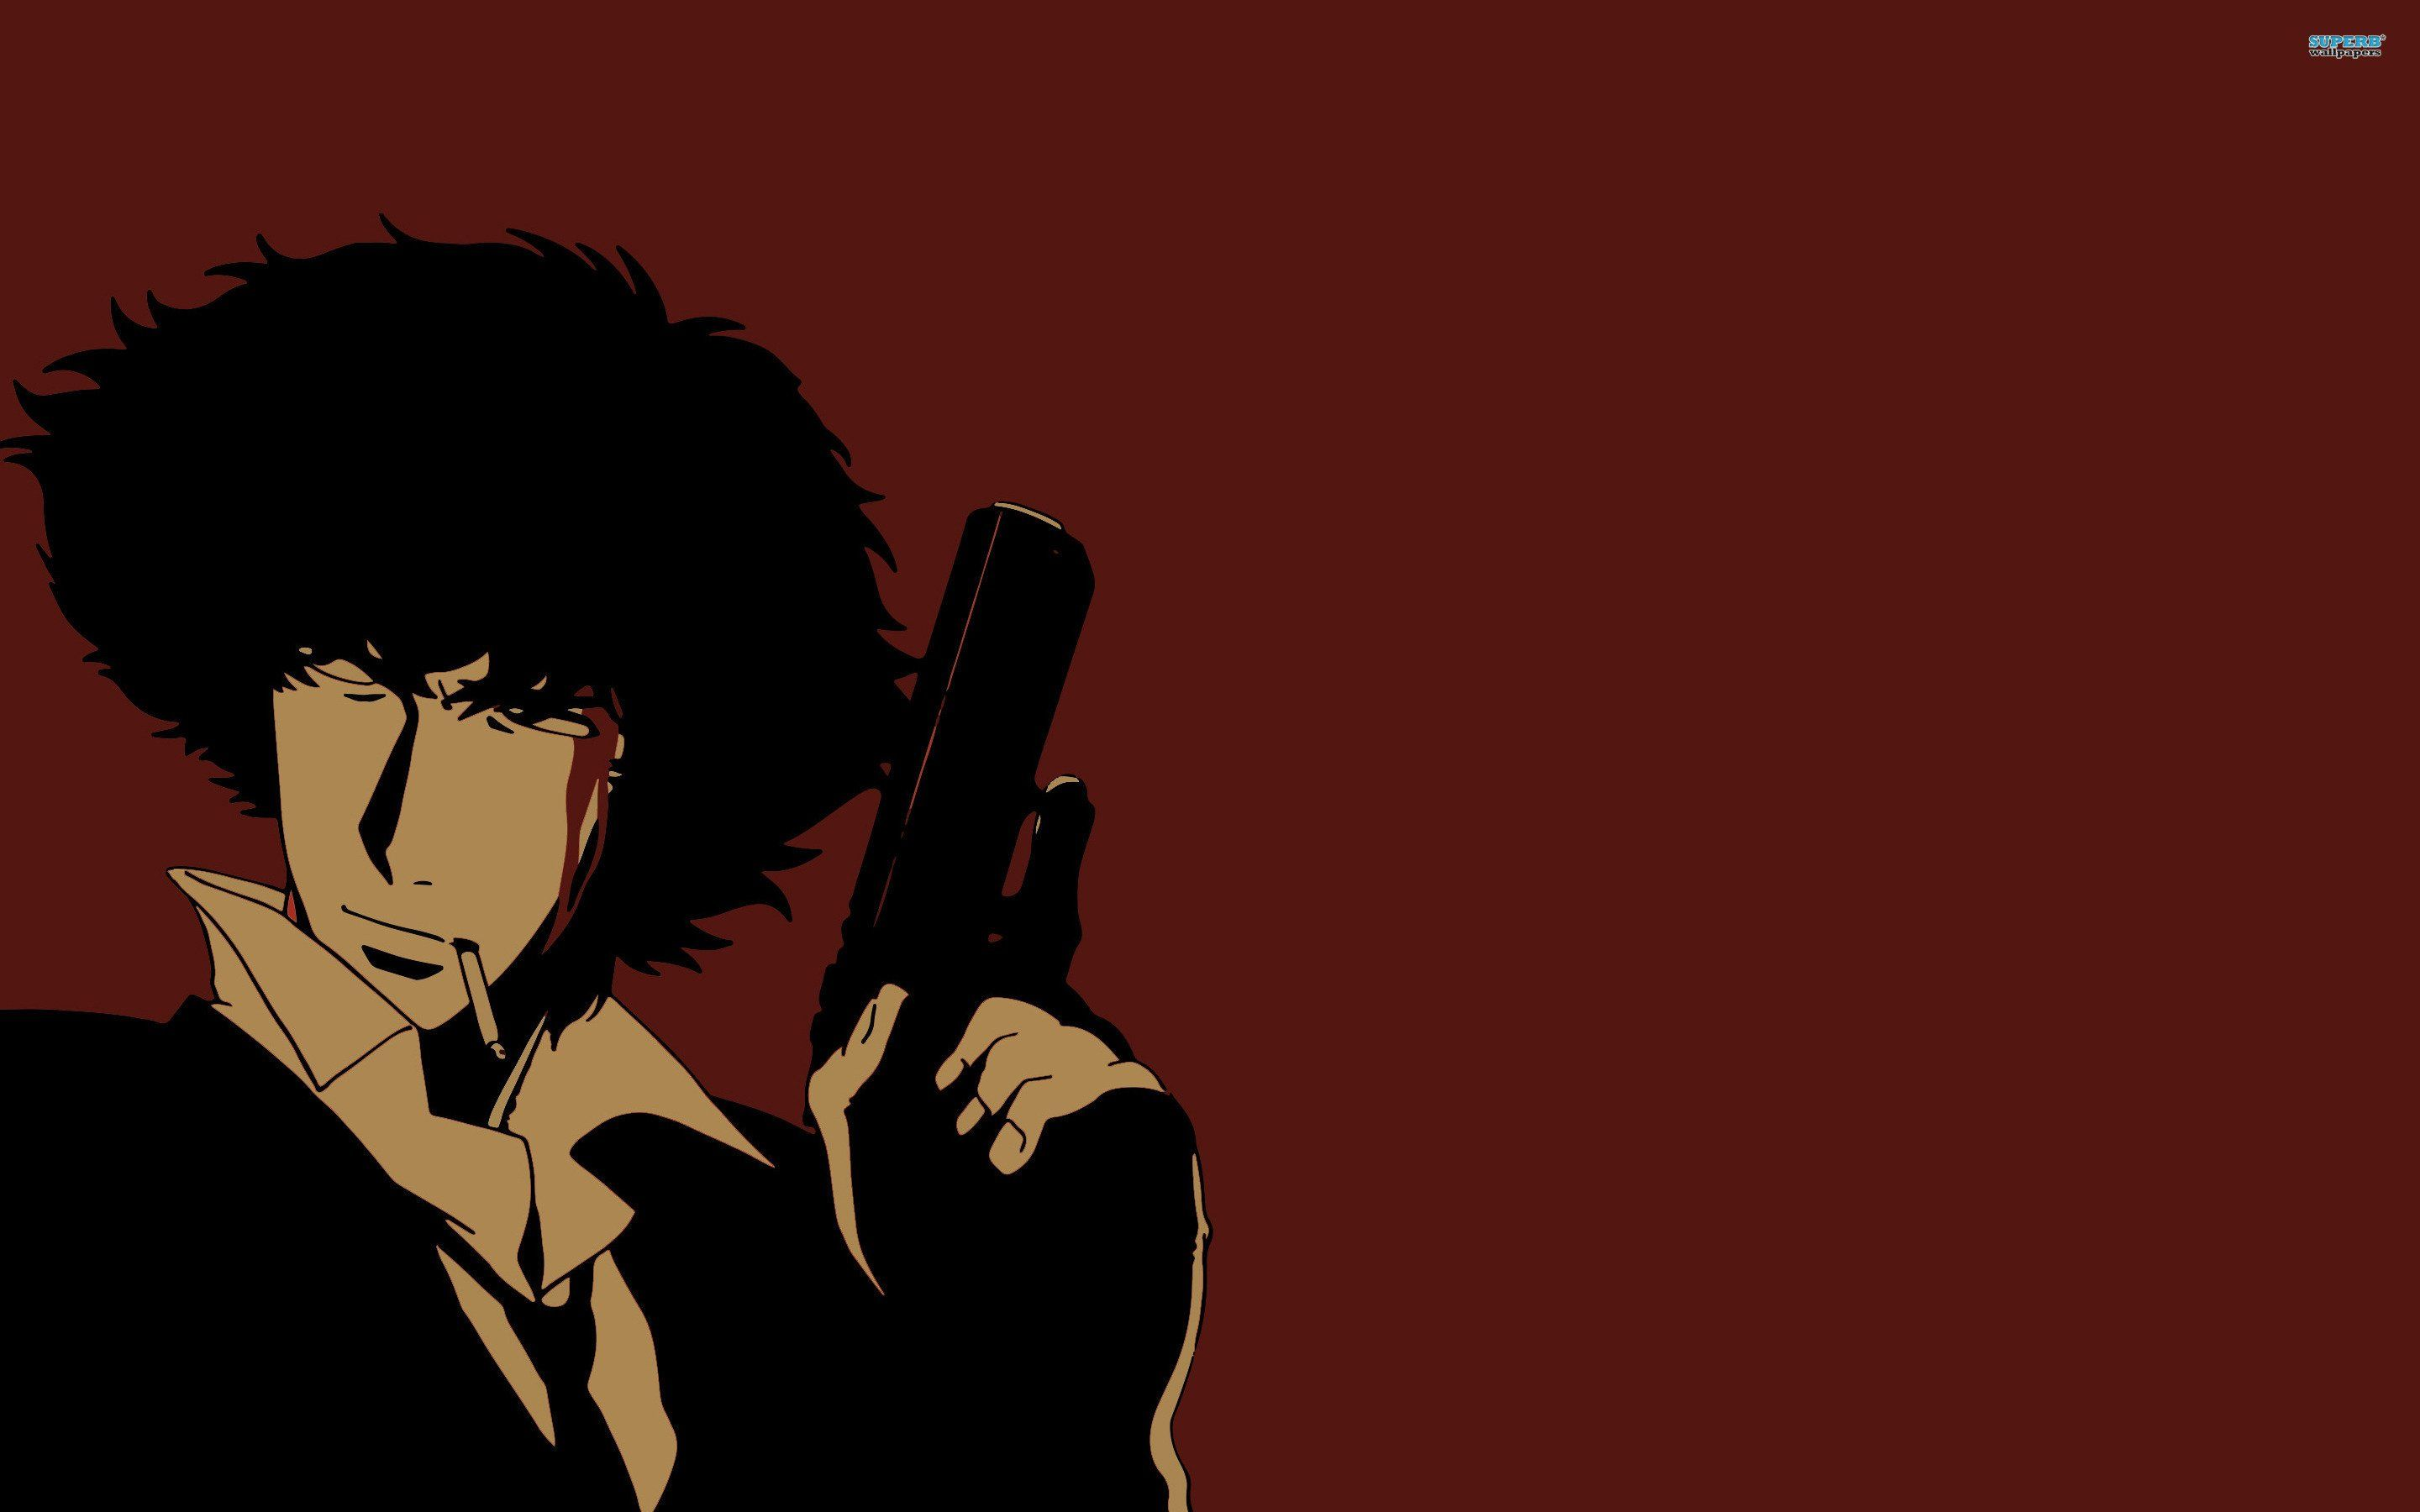 Hd Widescreen Cowboy Bebop Wallpaper Cowboy Bebop Cowboy Bebop Wallpapers Bebop